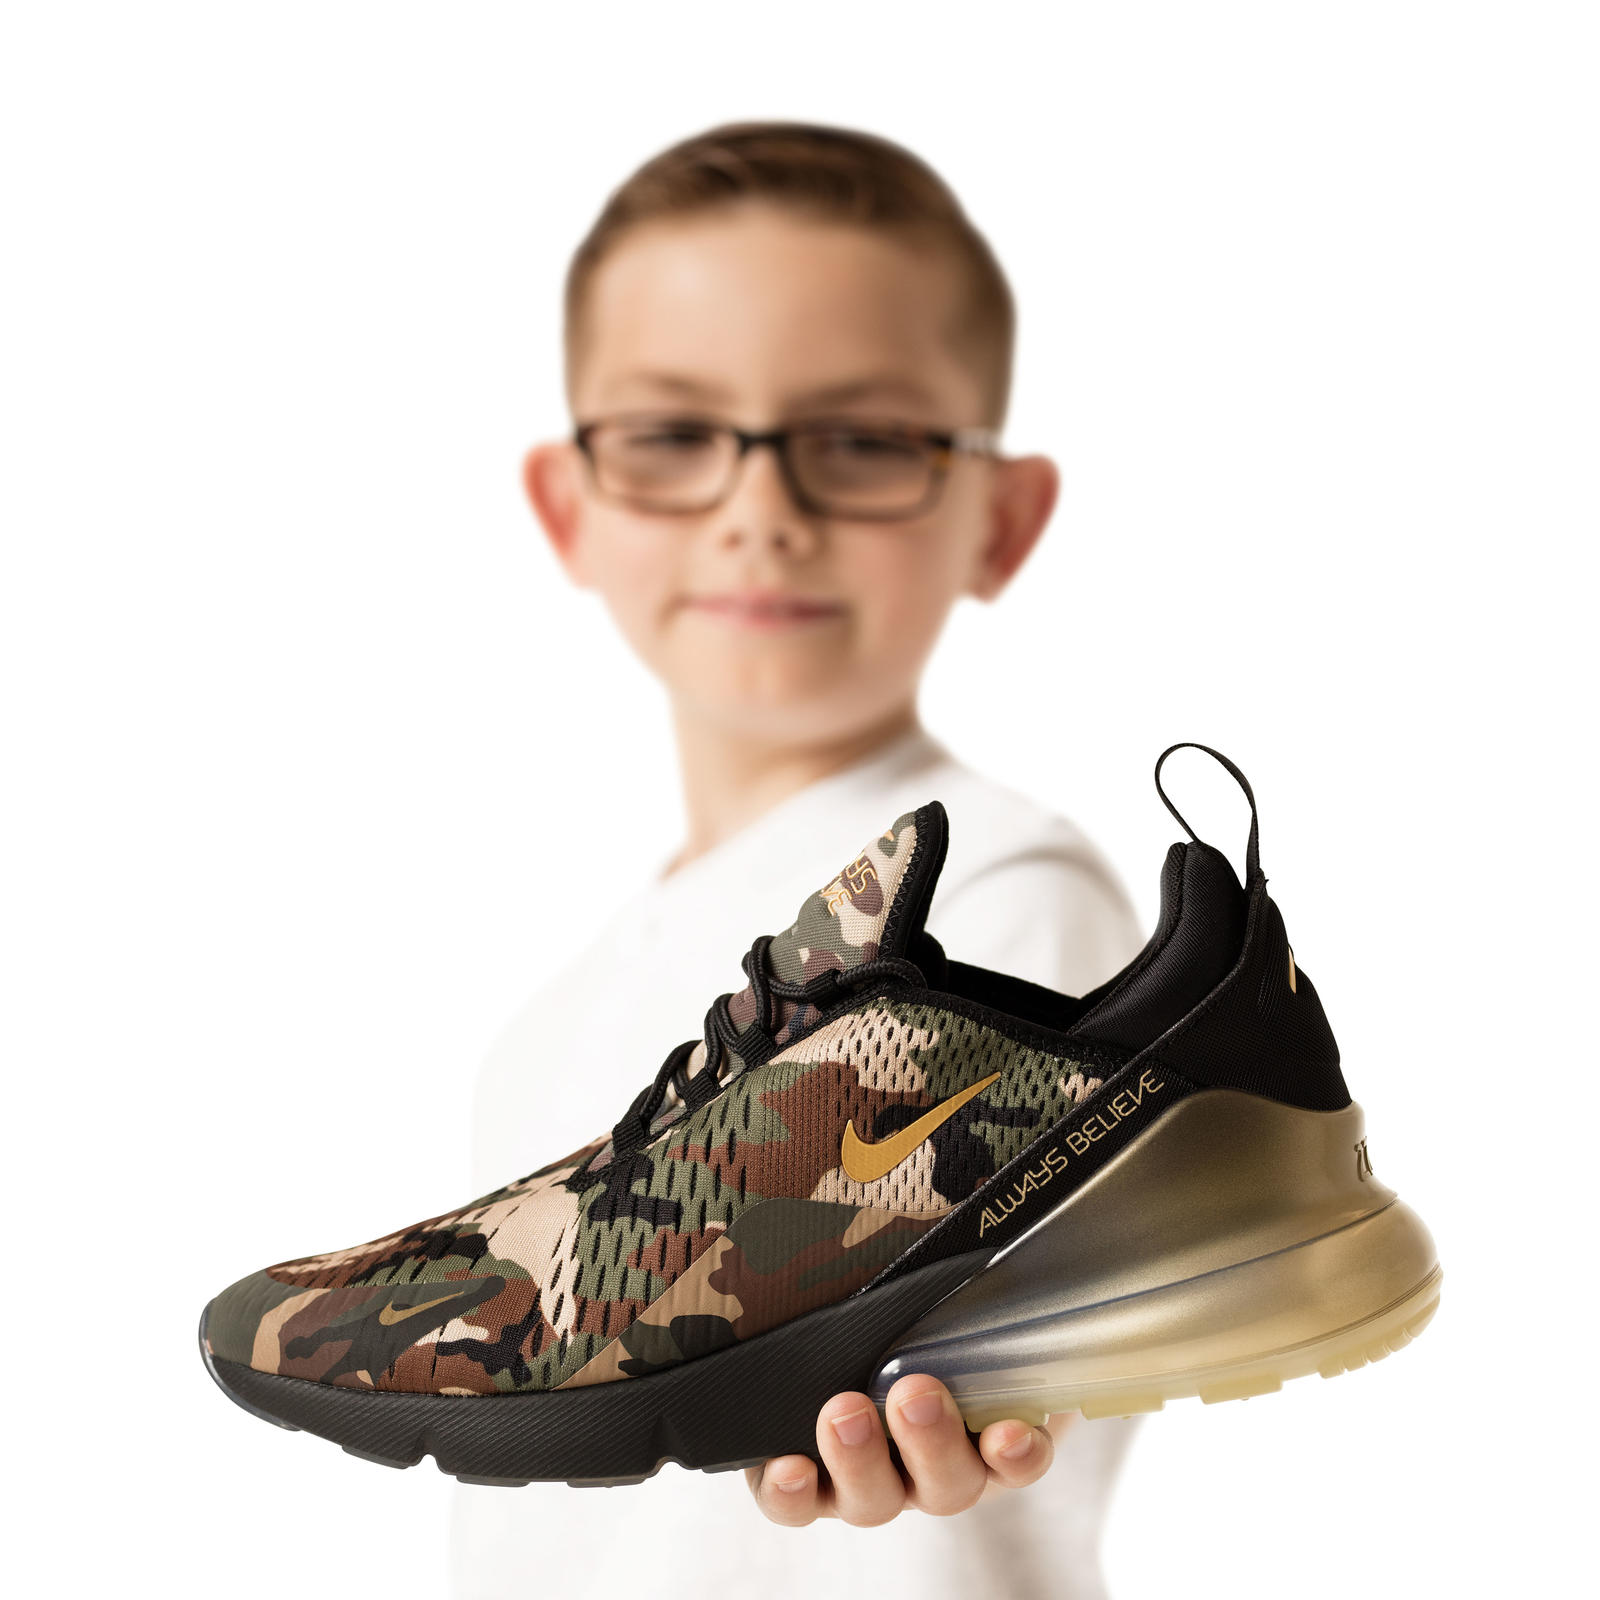 Introducing the Doernbecher Freestyle 2018 Collection 6